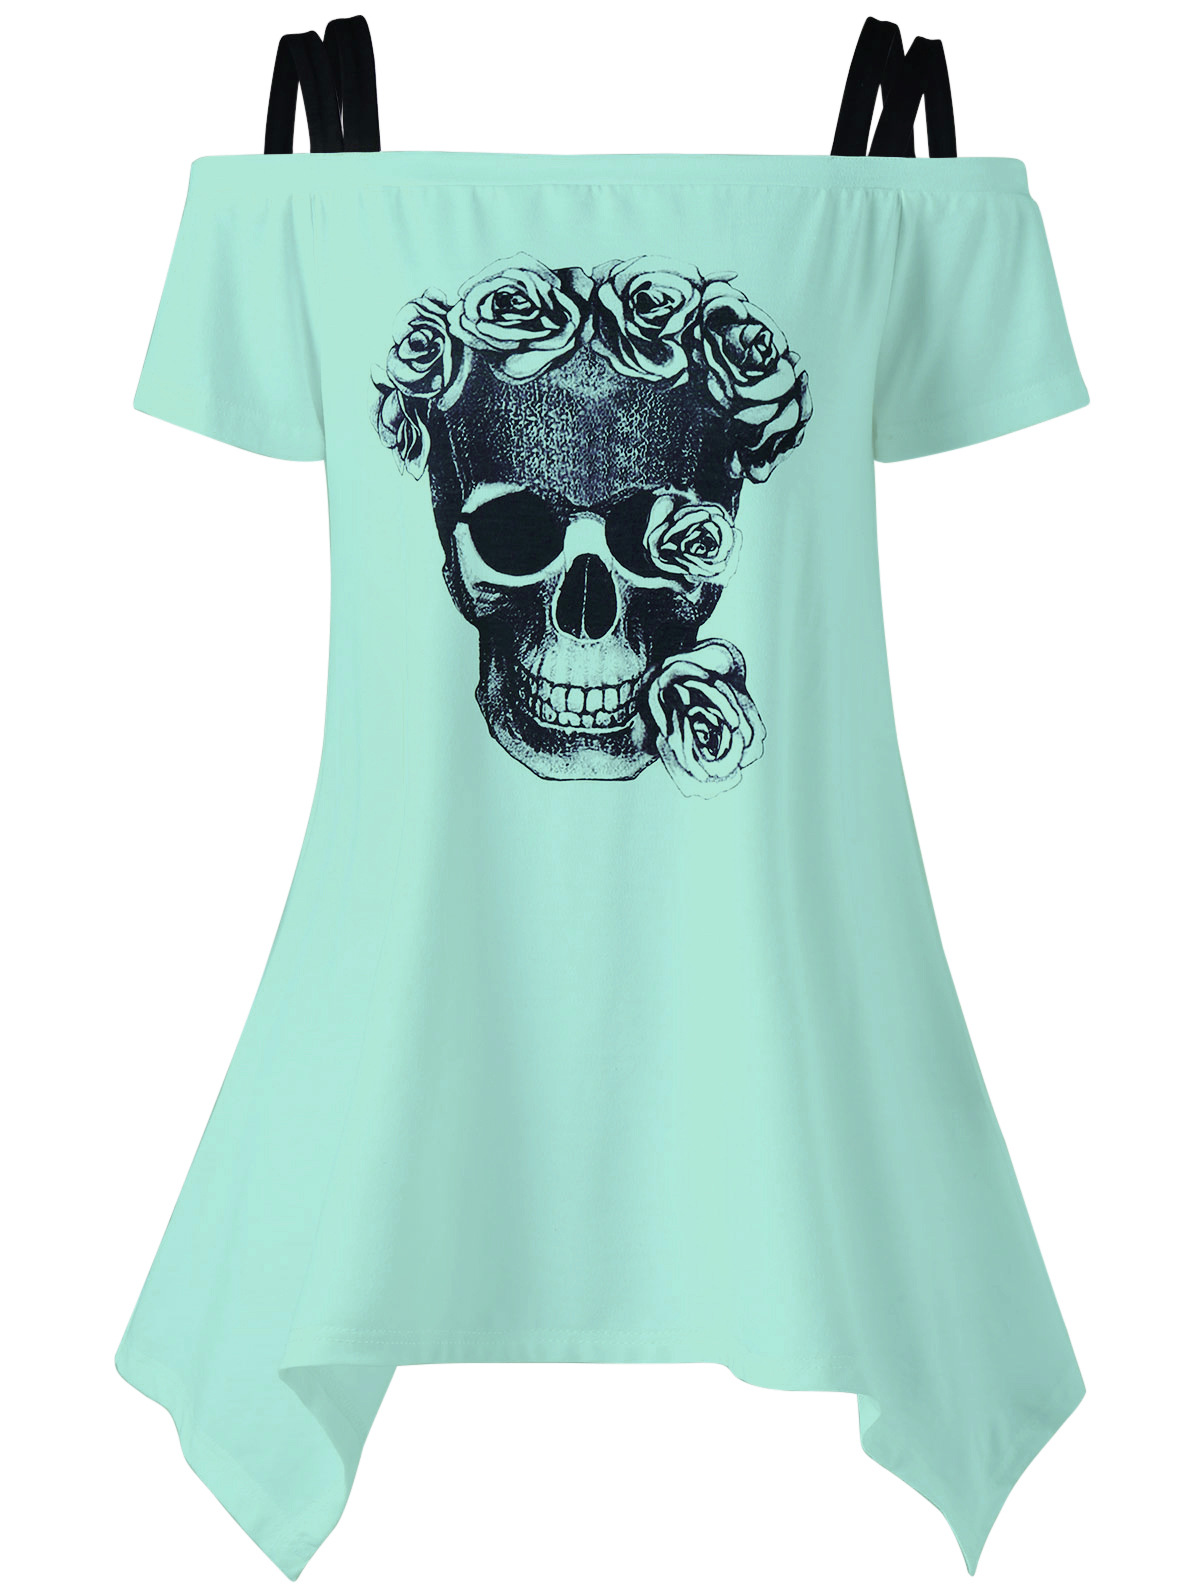 Women Blouses Shirts Skull Print Shirts Off Shoulder Female Tunic Mujer Sexy Women Tops LJ9615M